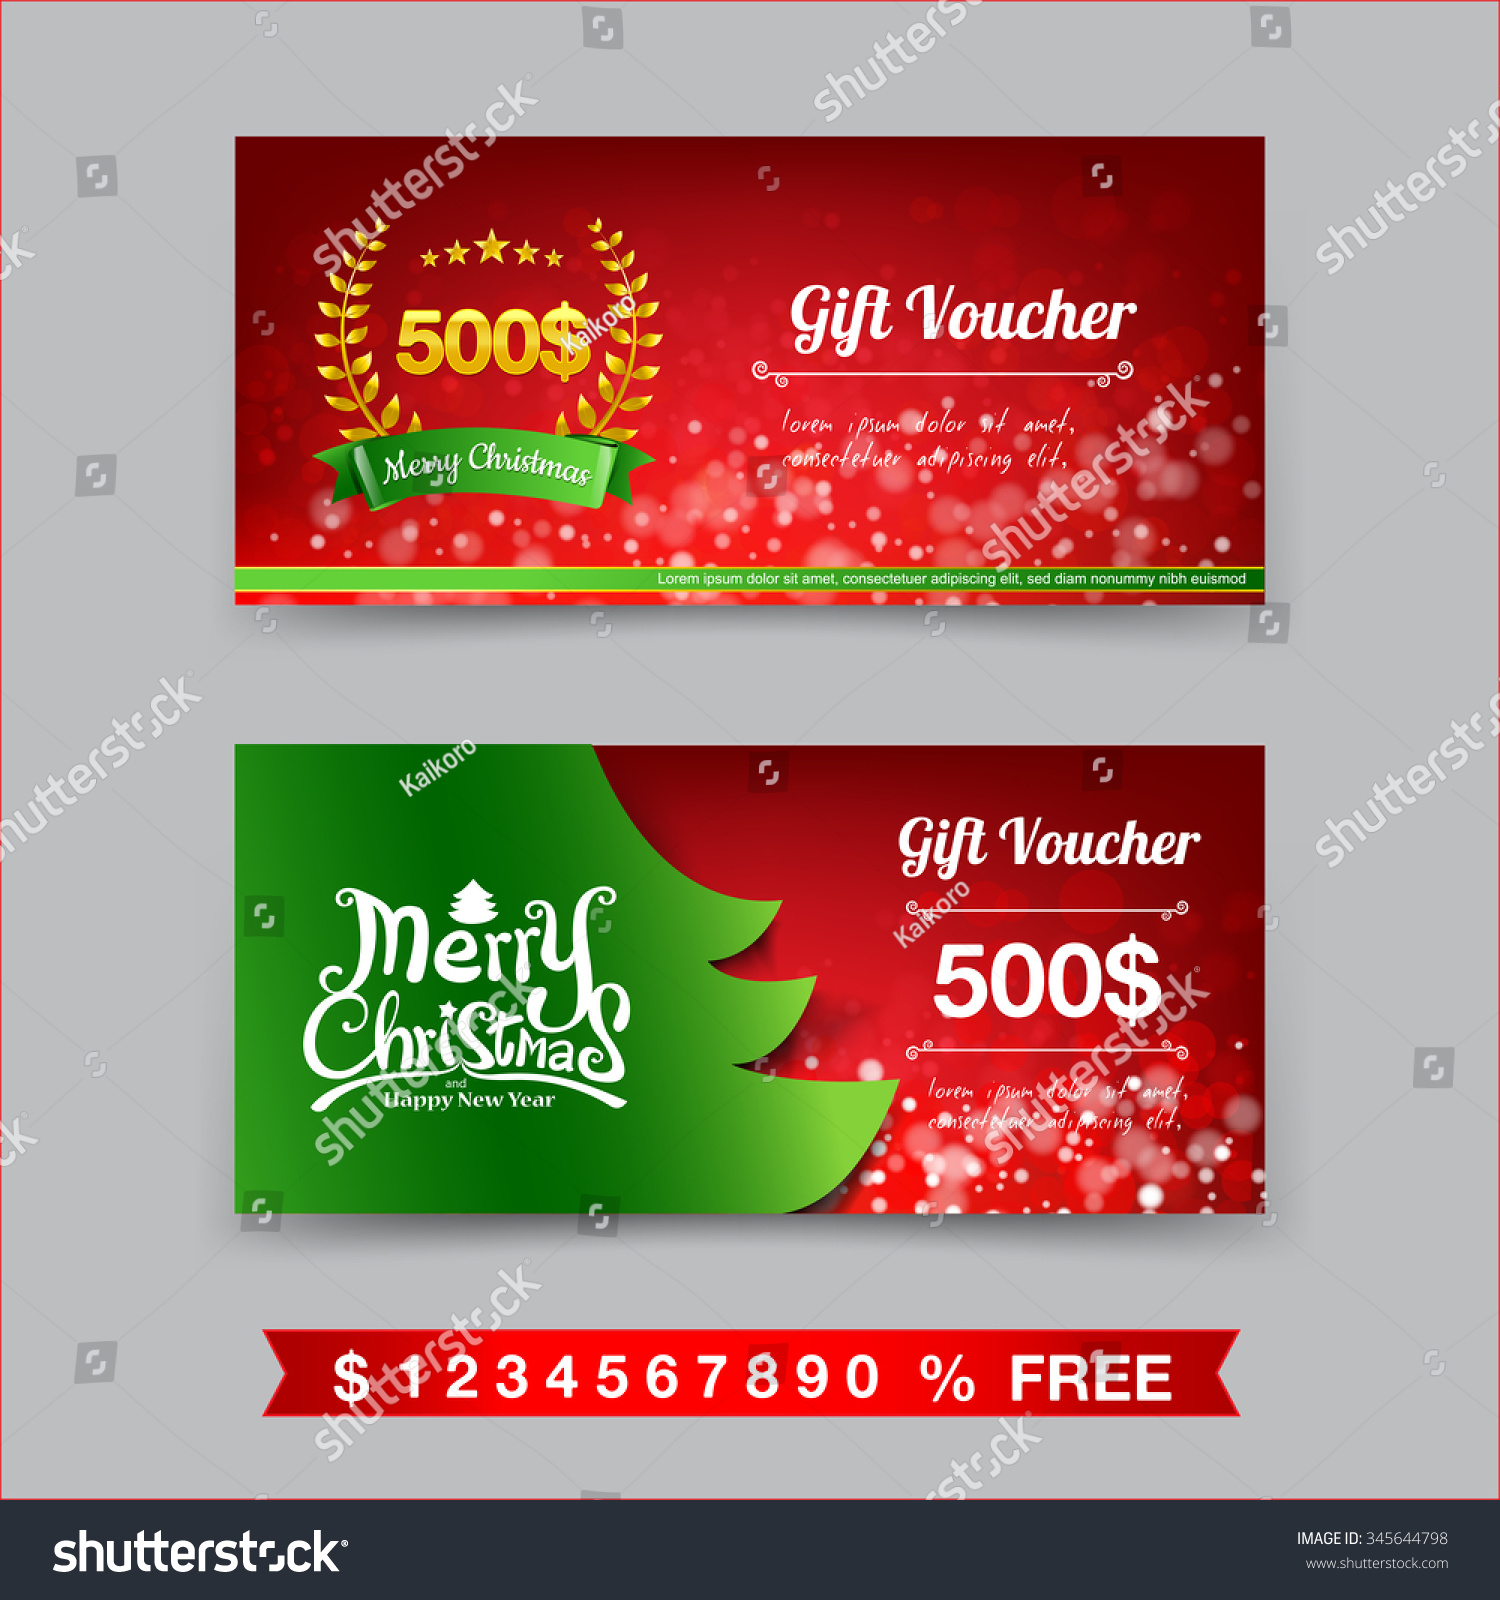 merry christmas gift voucher template vector stock vector merry christmas gift voucher template vector illustration eps10